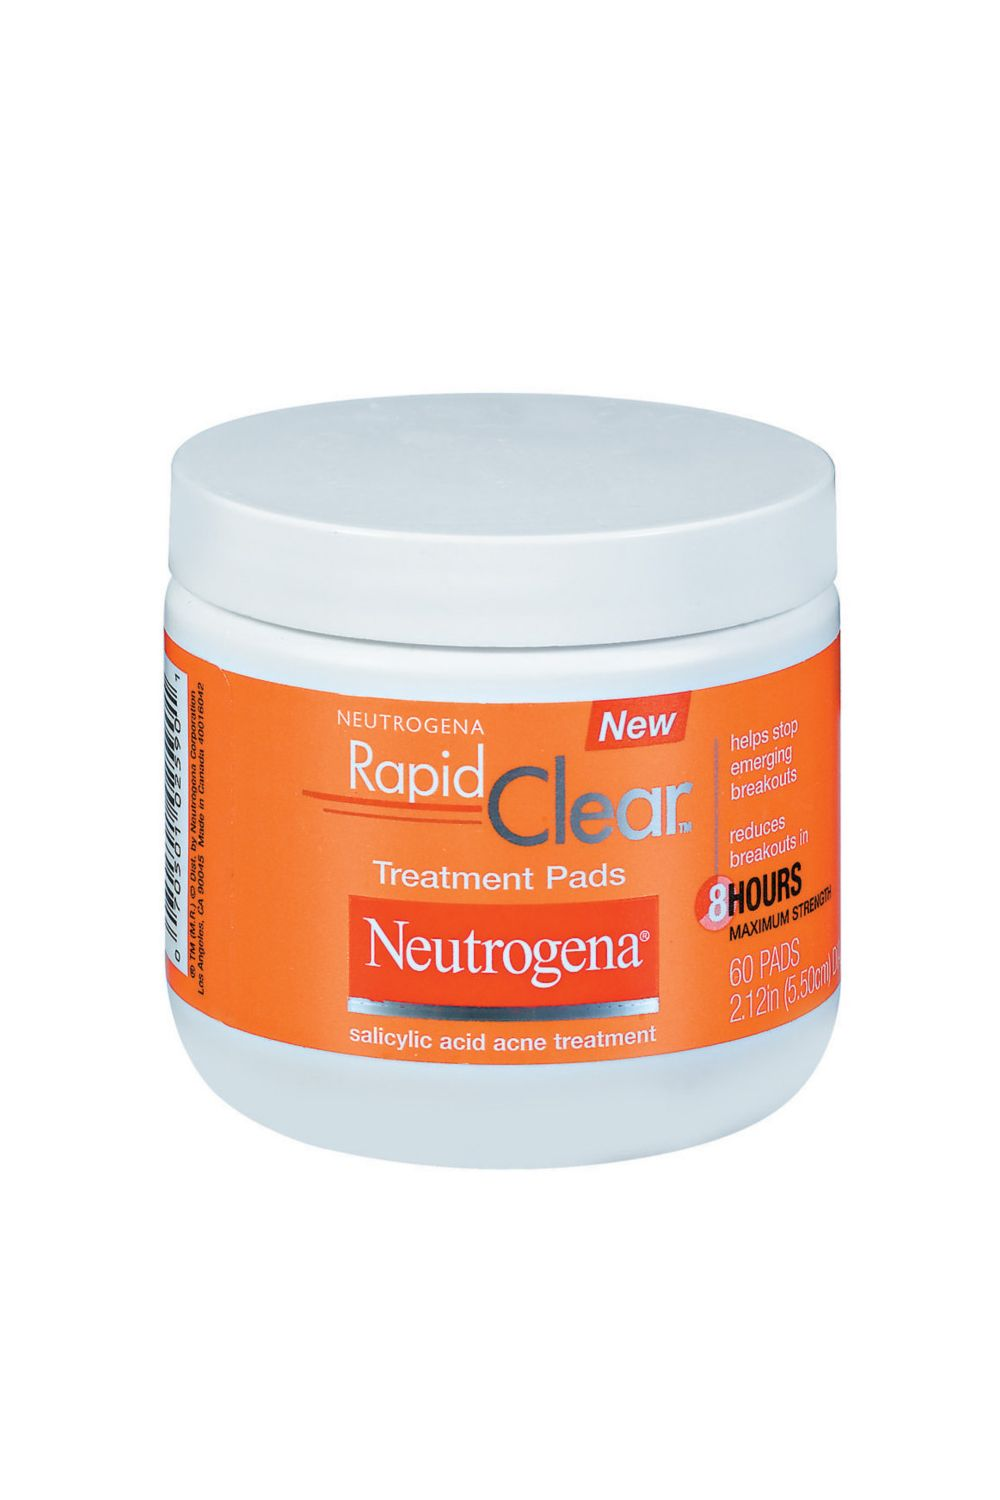 "<p>These cult-favorite pads are loved for a legit reason: The dose of 2-percent salicylic acid is gentle enough for sensitive skin, yet still effective enough to penetrate clogged pores.</p><p><i data-redactor-tag=""i"">Neutrogena Rapid Clear Daily Pads, $8.99</i></p><p><strong data-redactor-tag=""strong"">BUY IT:&nbsp&#x3B;<a href=""http://www.ulta.com/rapid-clear-daily-pads?productId=xlsImpprod1680025"">ulta.com</a>.&nbsp&#x3B;</strong></p>"